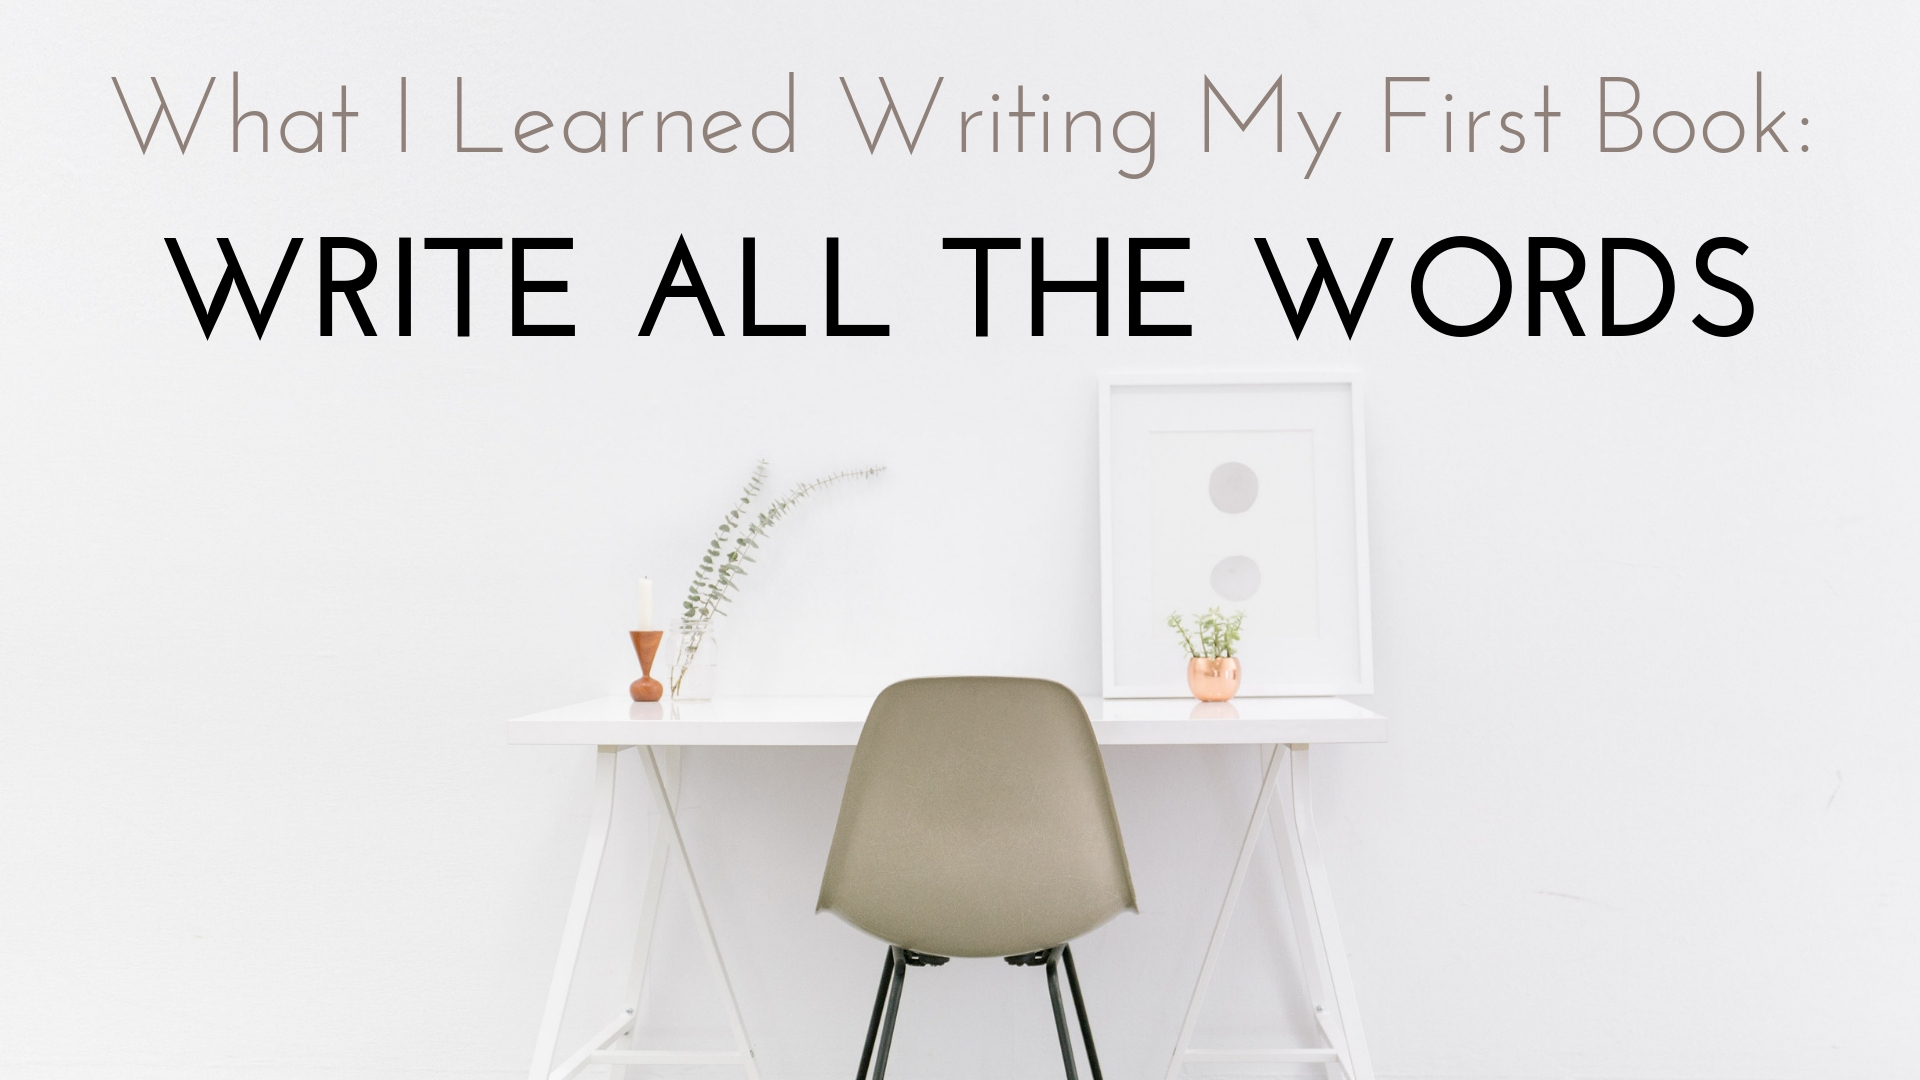 banner-what-i-learned-writing-my-first-novel-01.jpg